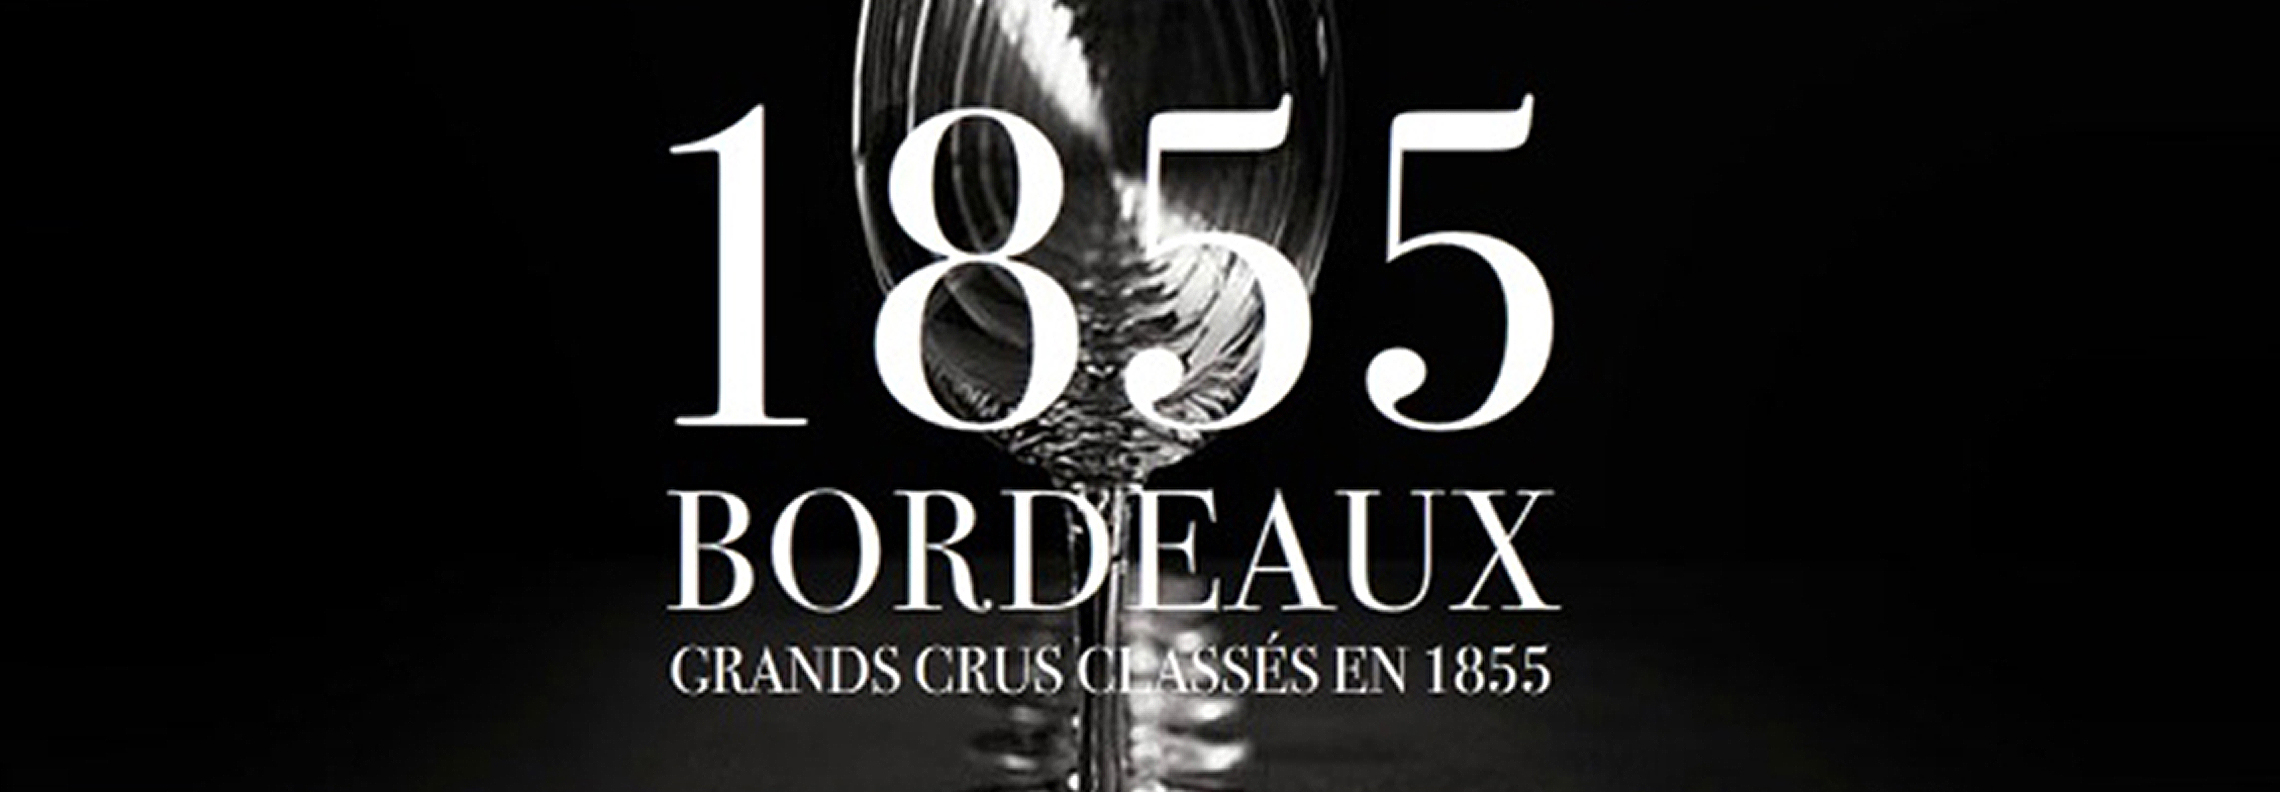 Grand Cru Classes en 1855